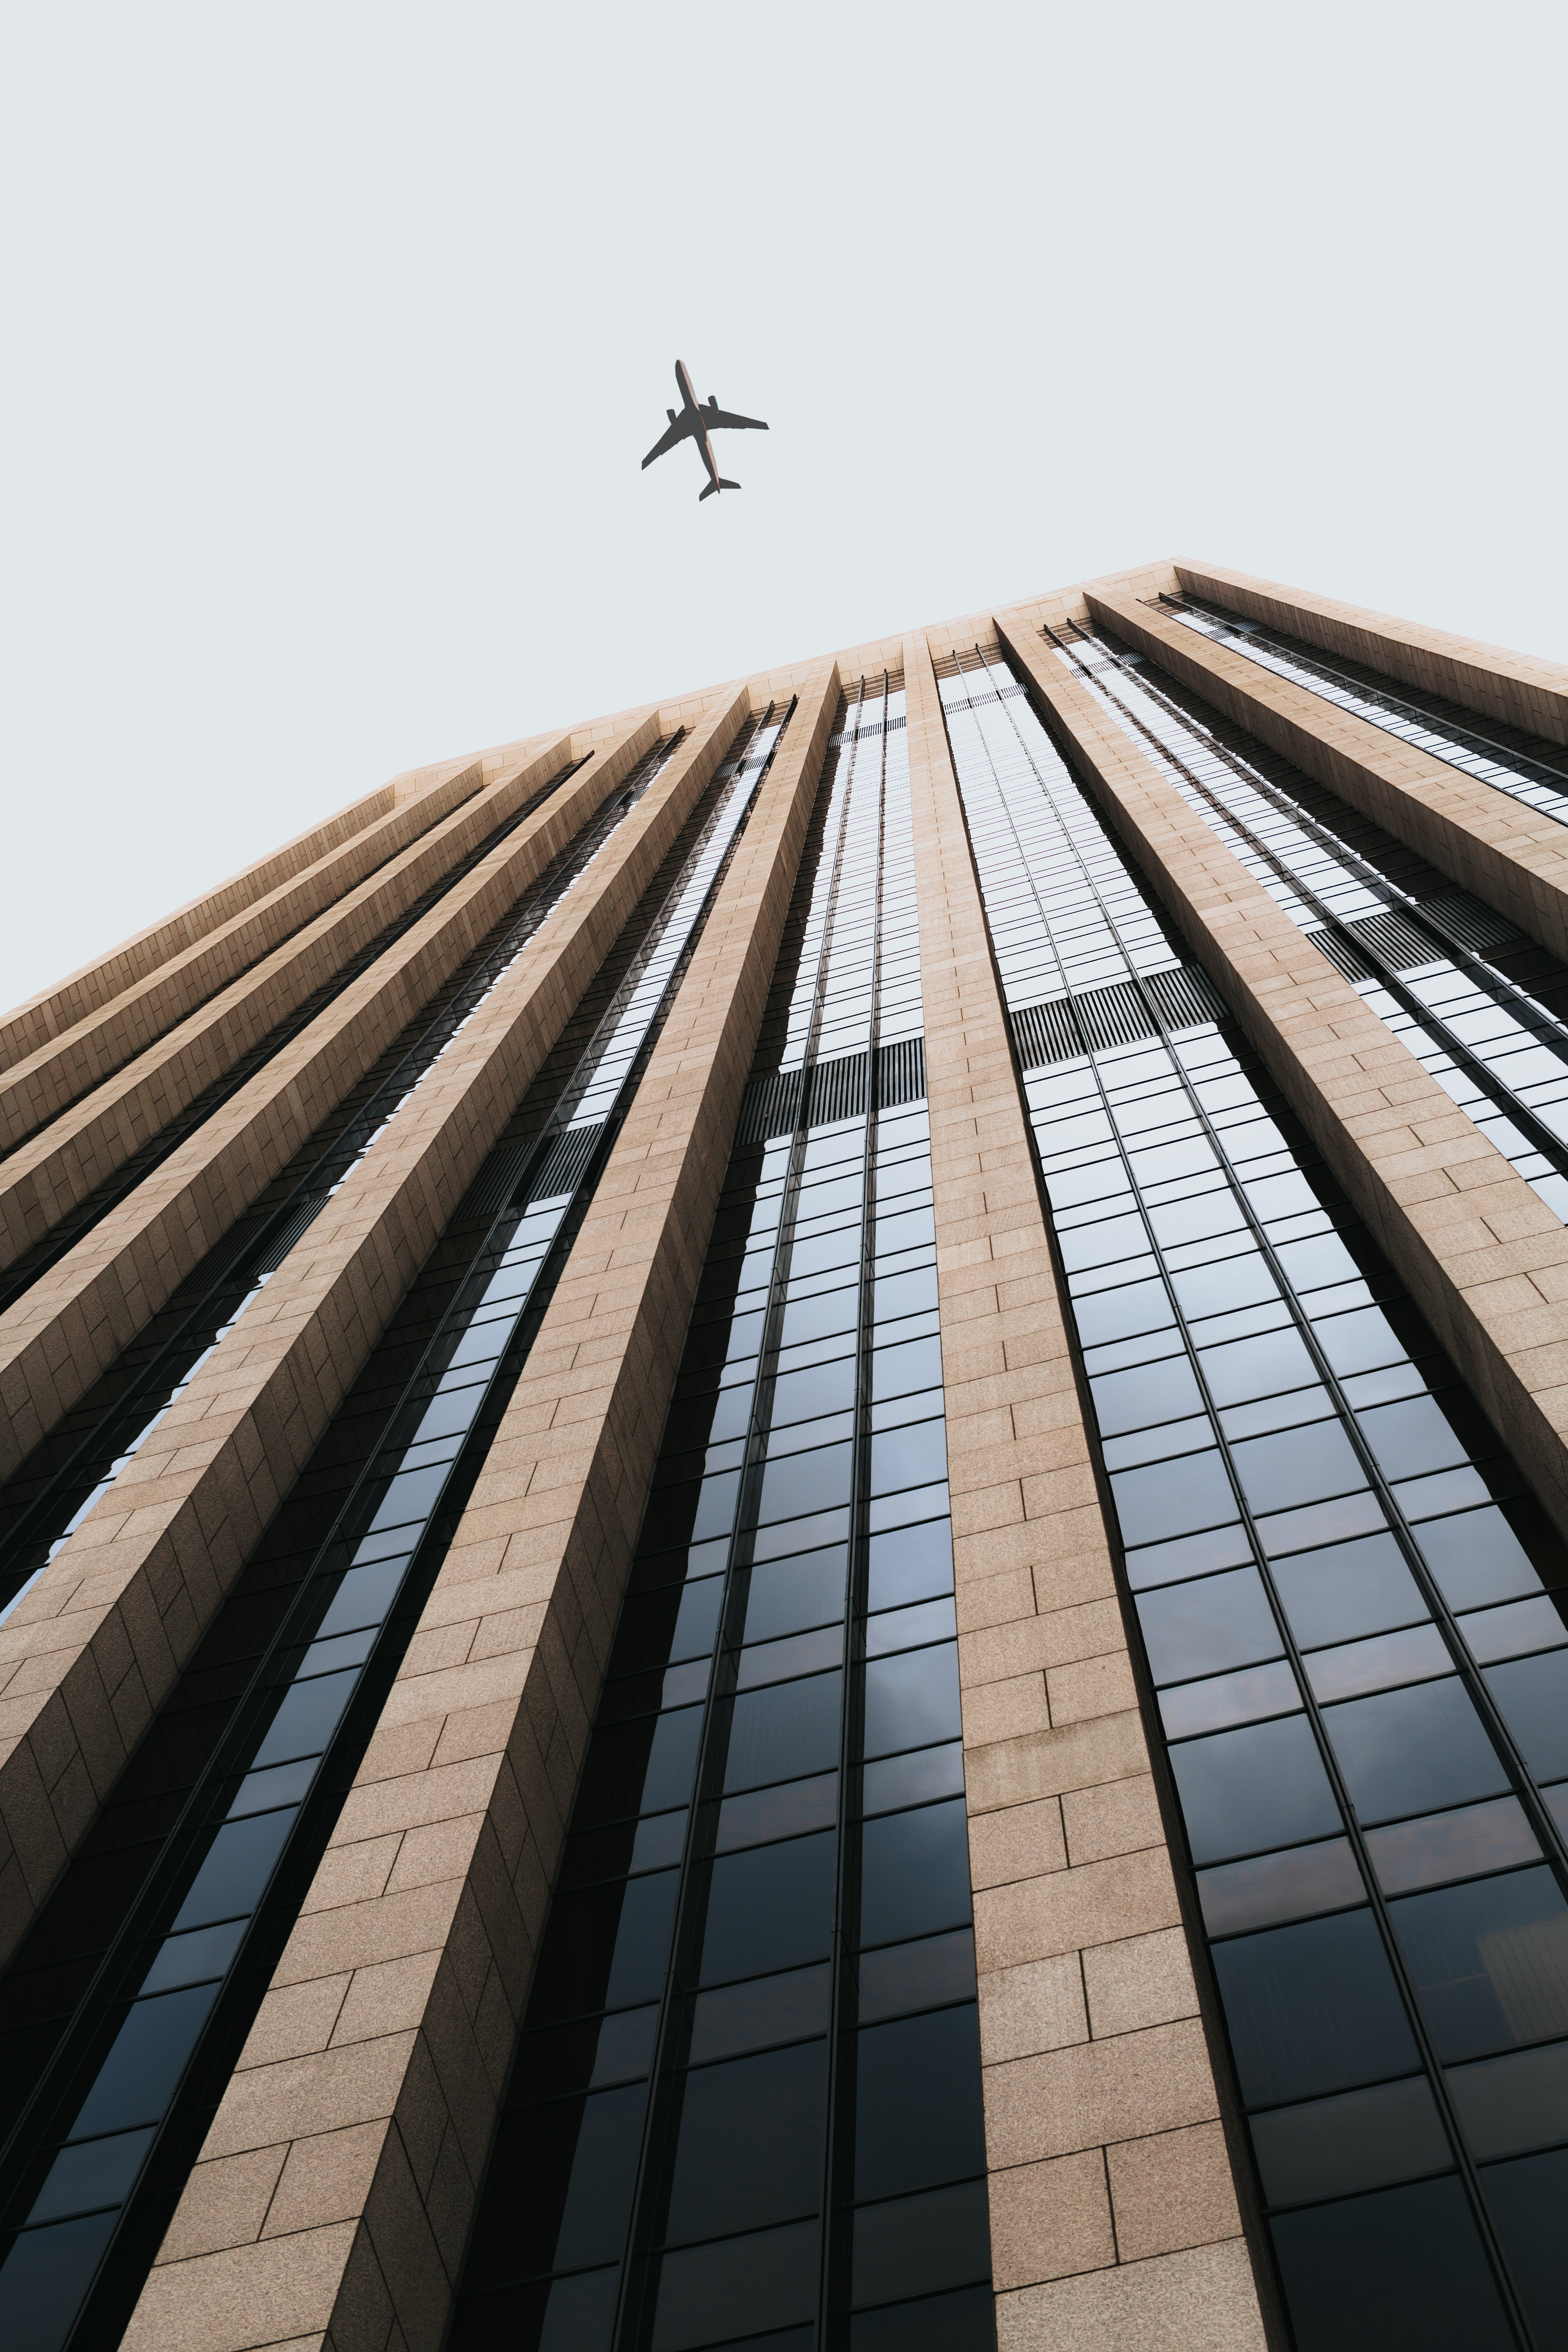 worm's eye view of building during daytime